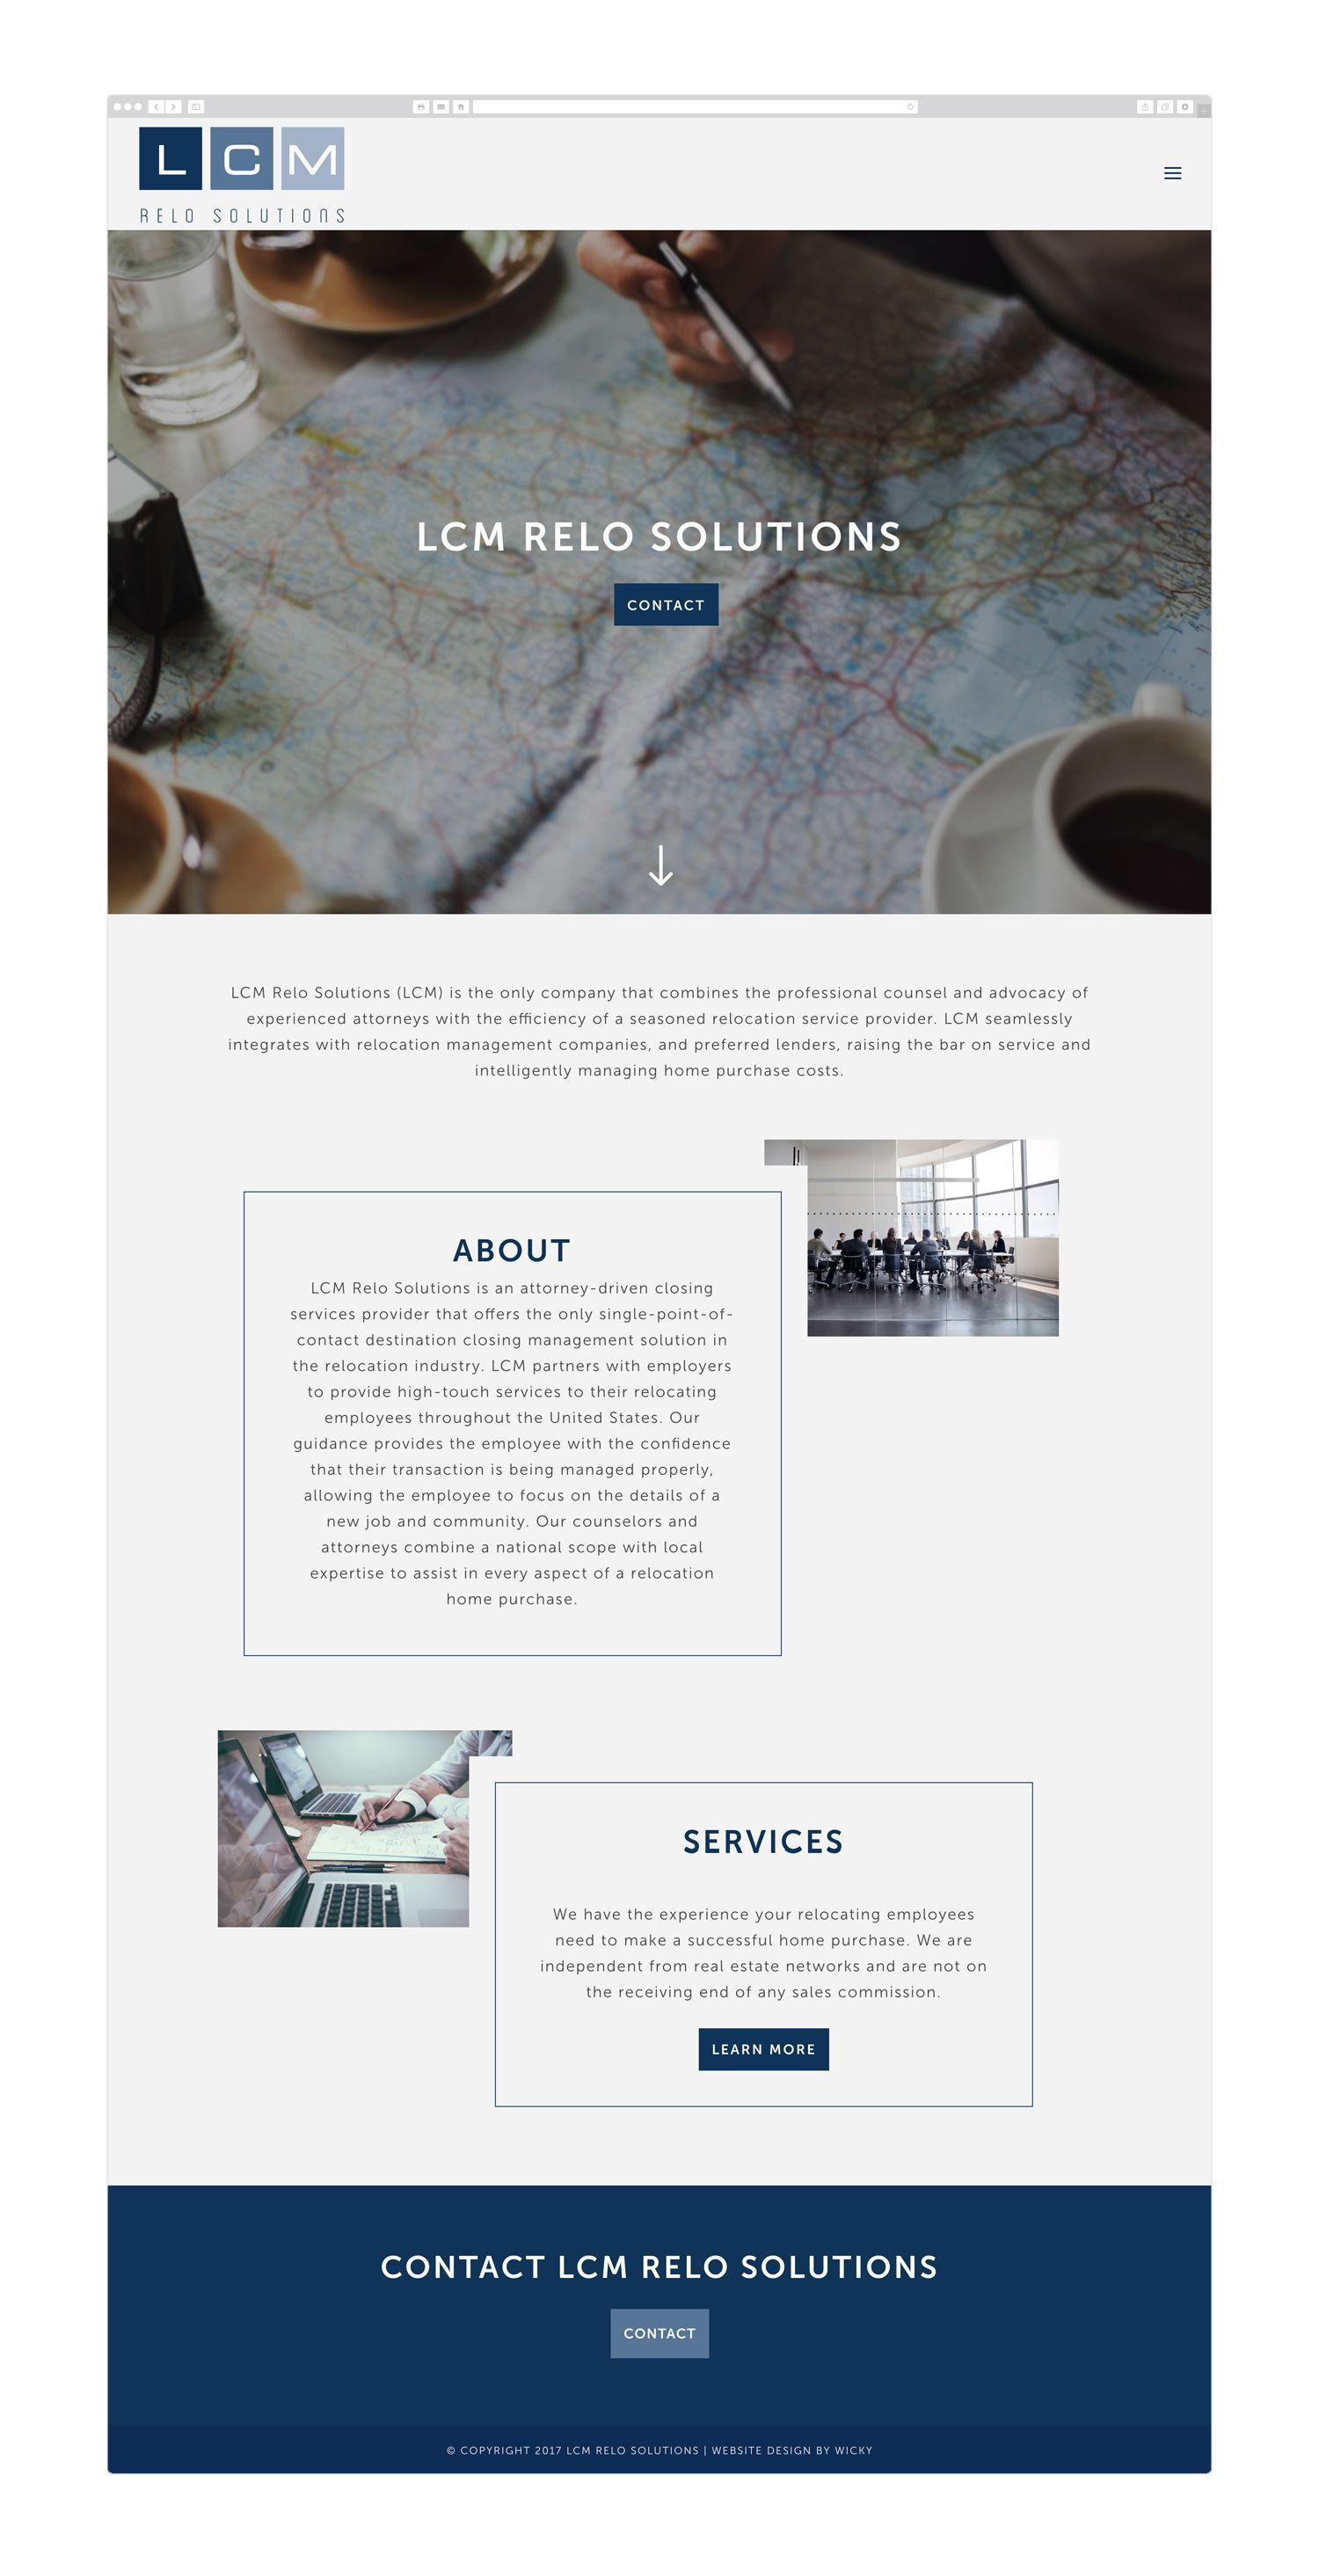 Wordpress Web Design For Lcm Relo Solutions By Wicky Design Website Wordpress Webdesign Blue Cor Wordpress Web Design Web Design Wordpress Website Design